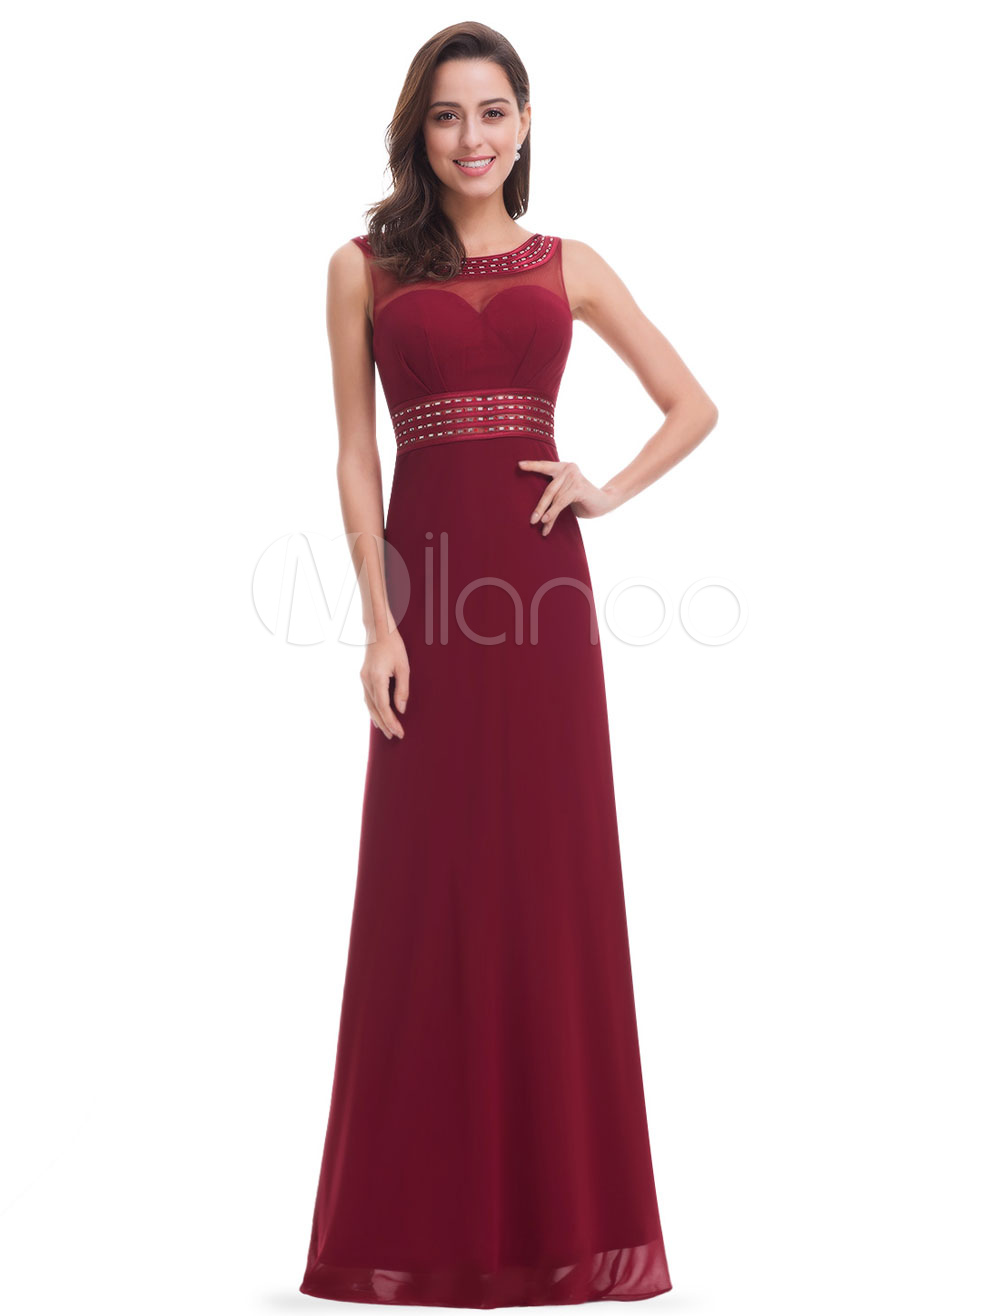 Burgundy Mother's Dress Chiffon Mermaid Beading Formal Evening Dress Illusion Sweetheart Sleeveless Floor Length Wedding Guest Dresses